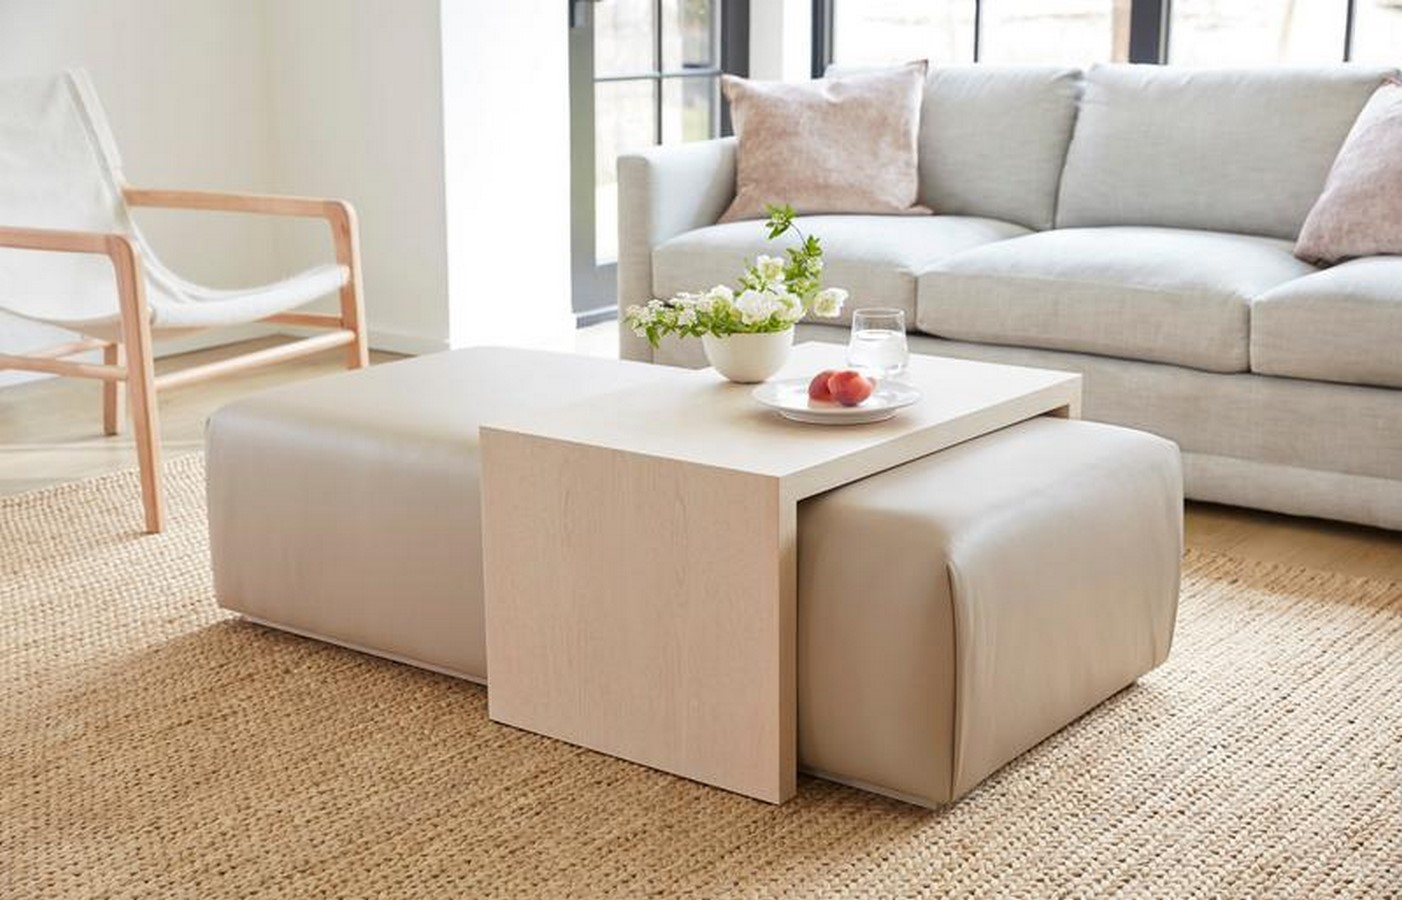 The Bowery Coffee Table Ottoman - Sheet1